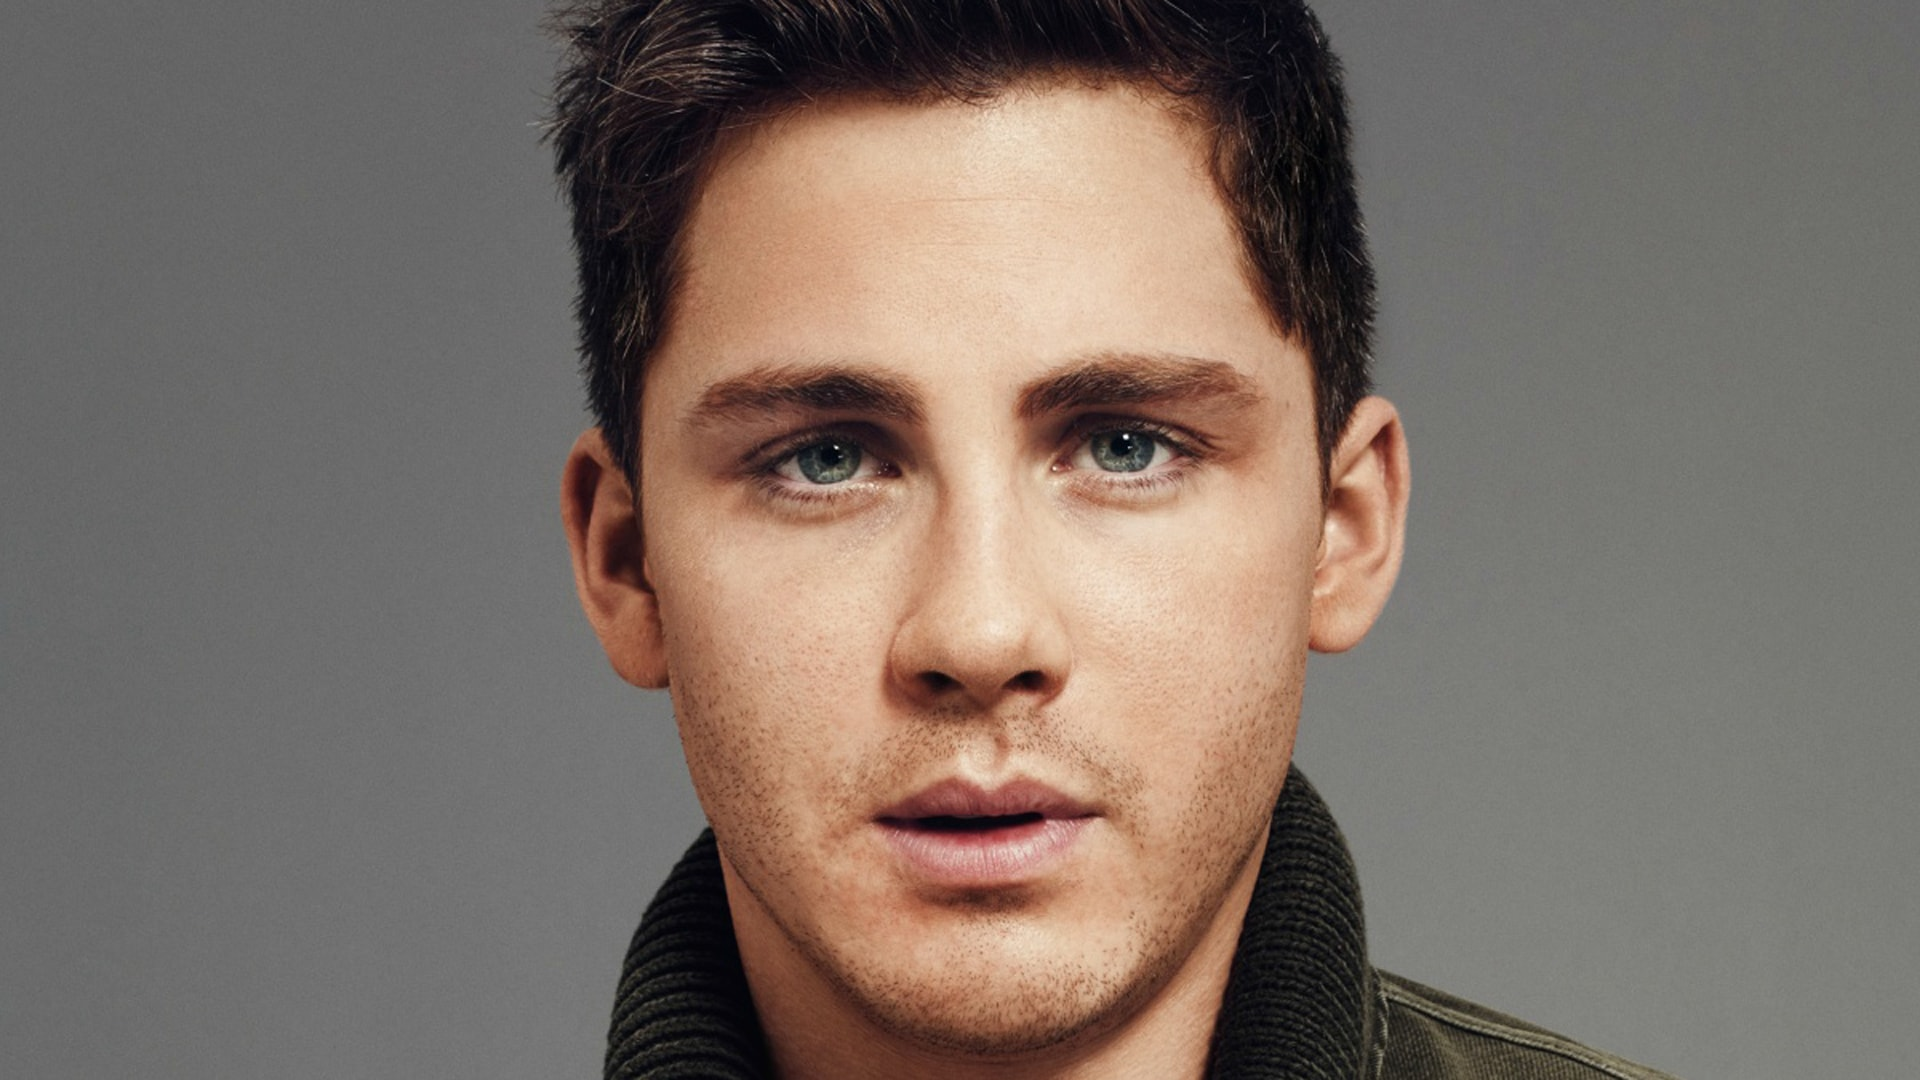 logan lerman face wallpaper 169